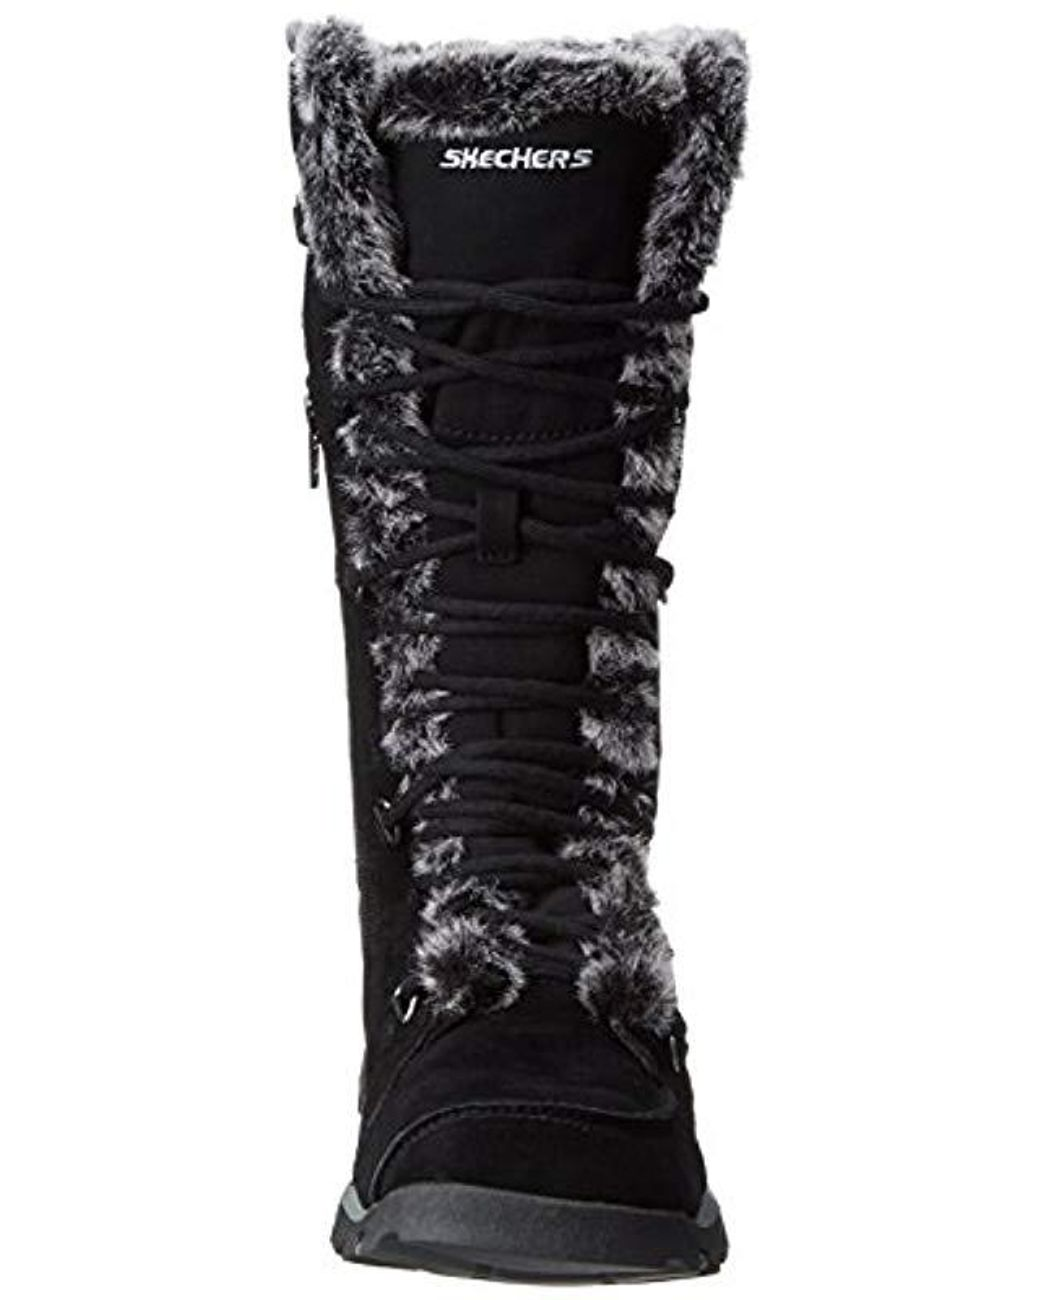 455a4a67b64a5 Skechers Grand Jams Unlimited Boot in Black - Lyst